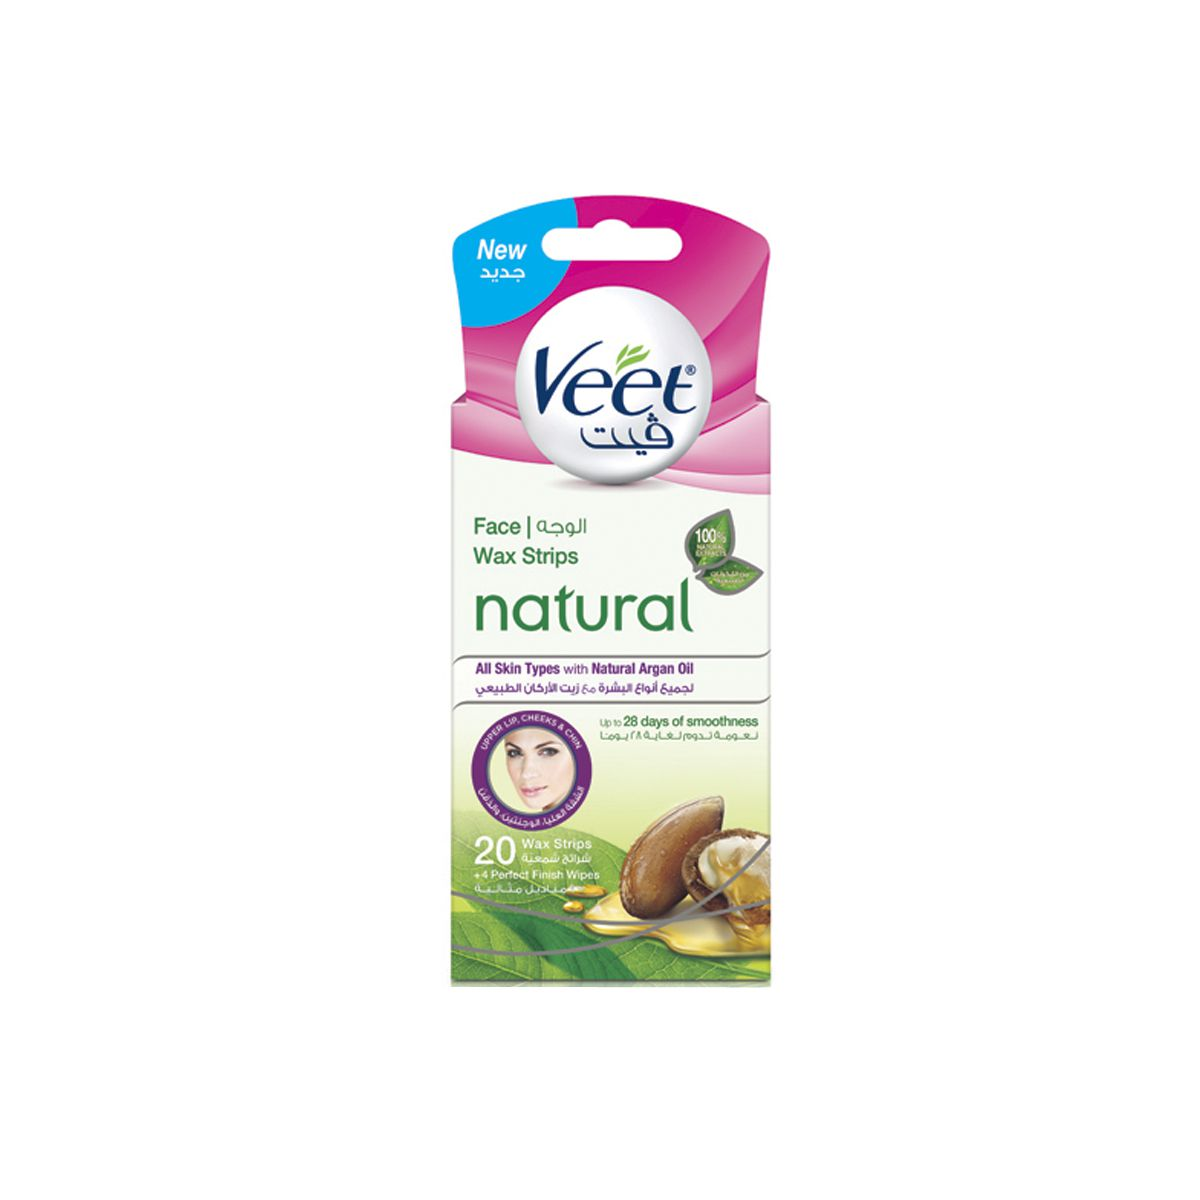 Veet Facial Hair Remover Cold Wax Strips With Argan Oil Pack Of